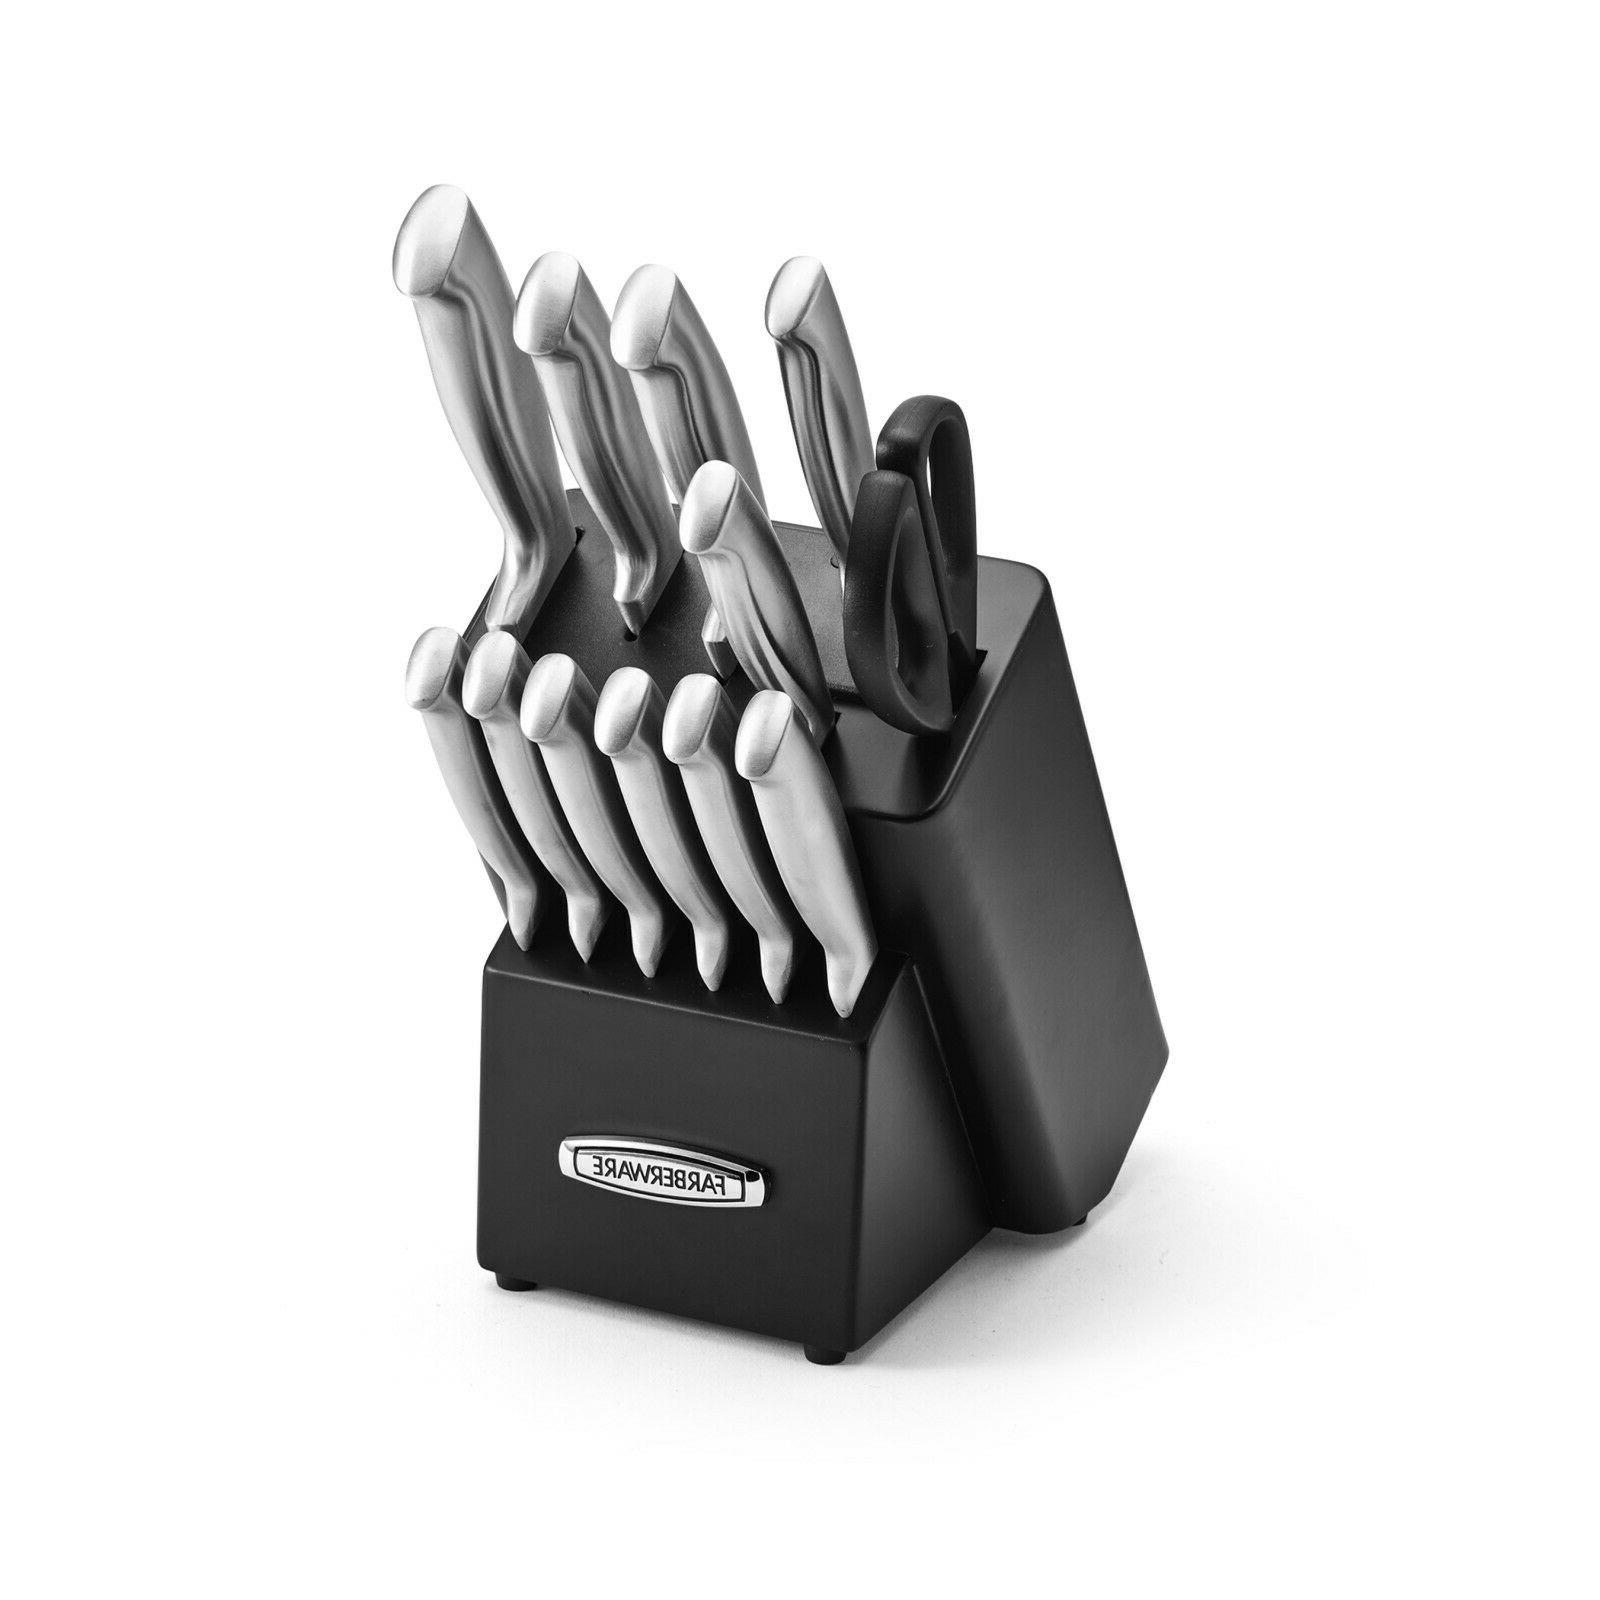 Self Sharpening Knife Set Commercial Kitchen Knives Stainles